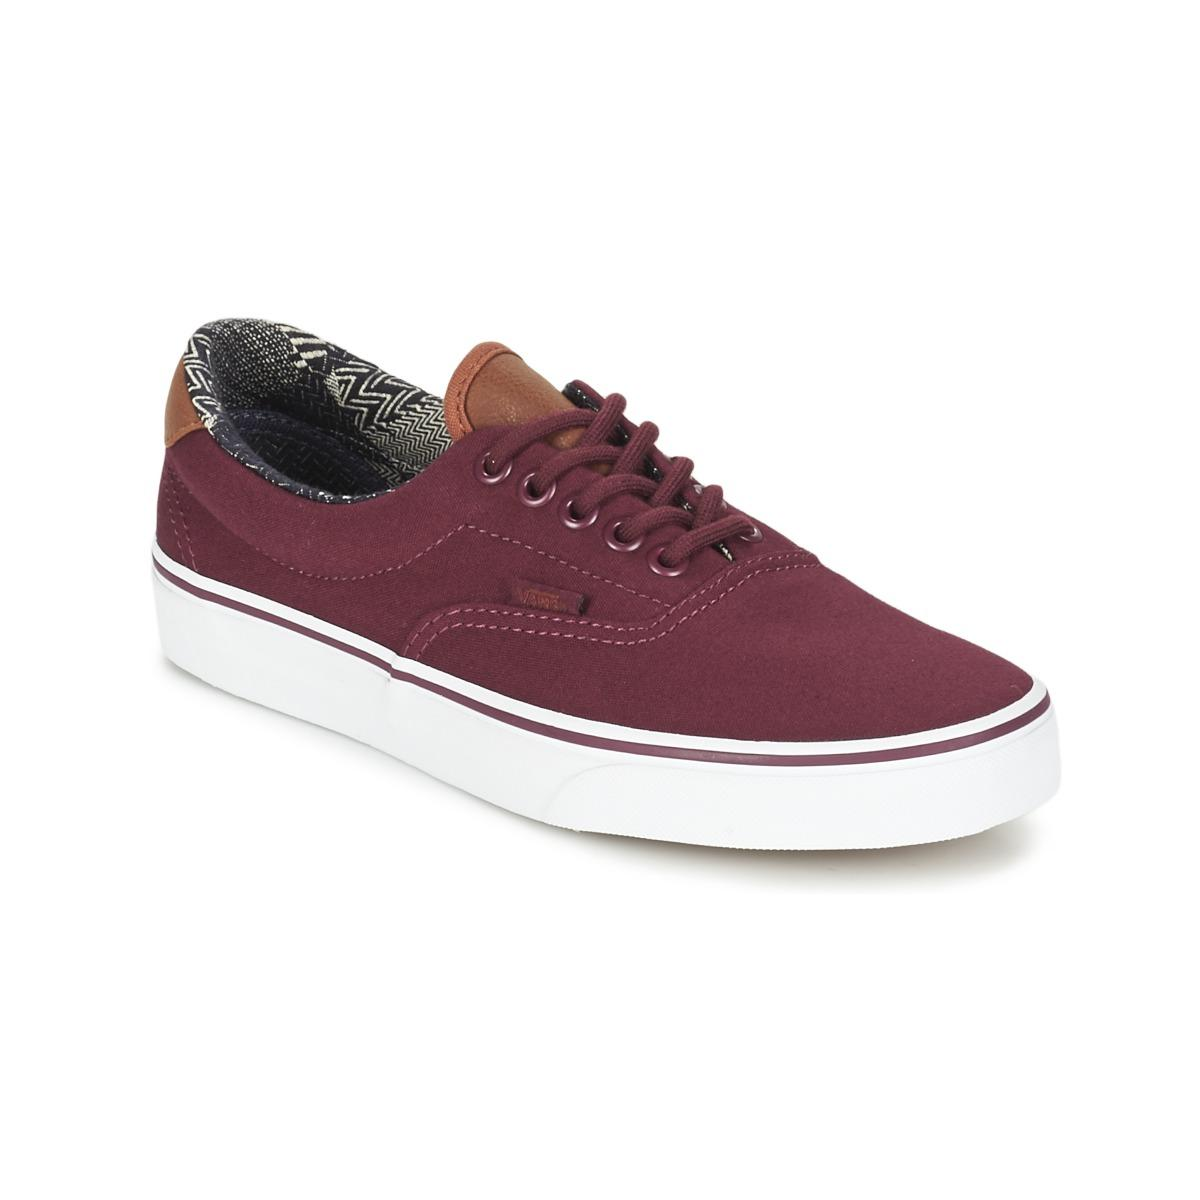 ad7524fb77597b Vans Era 59 Shoes (trainers) in Red - Lyst